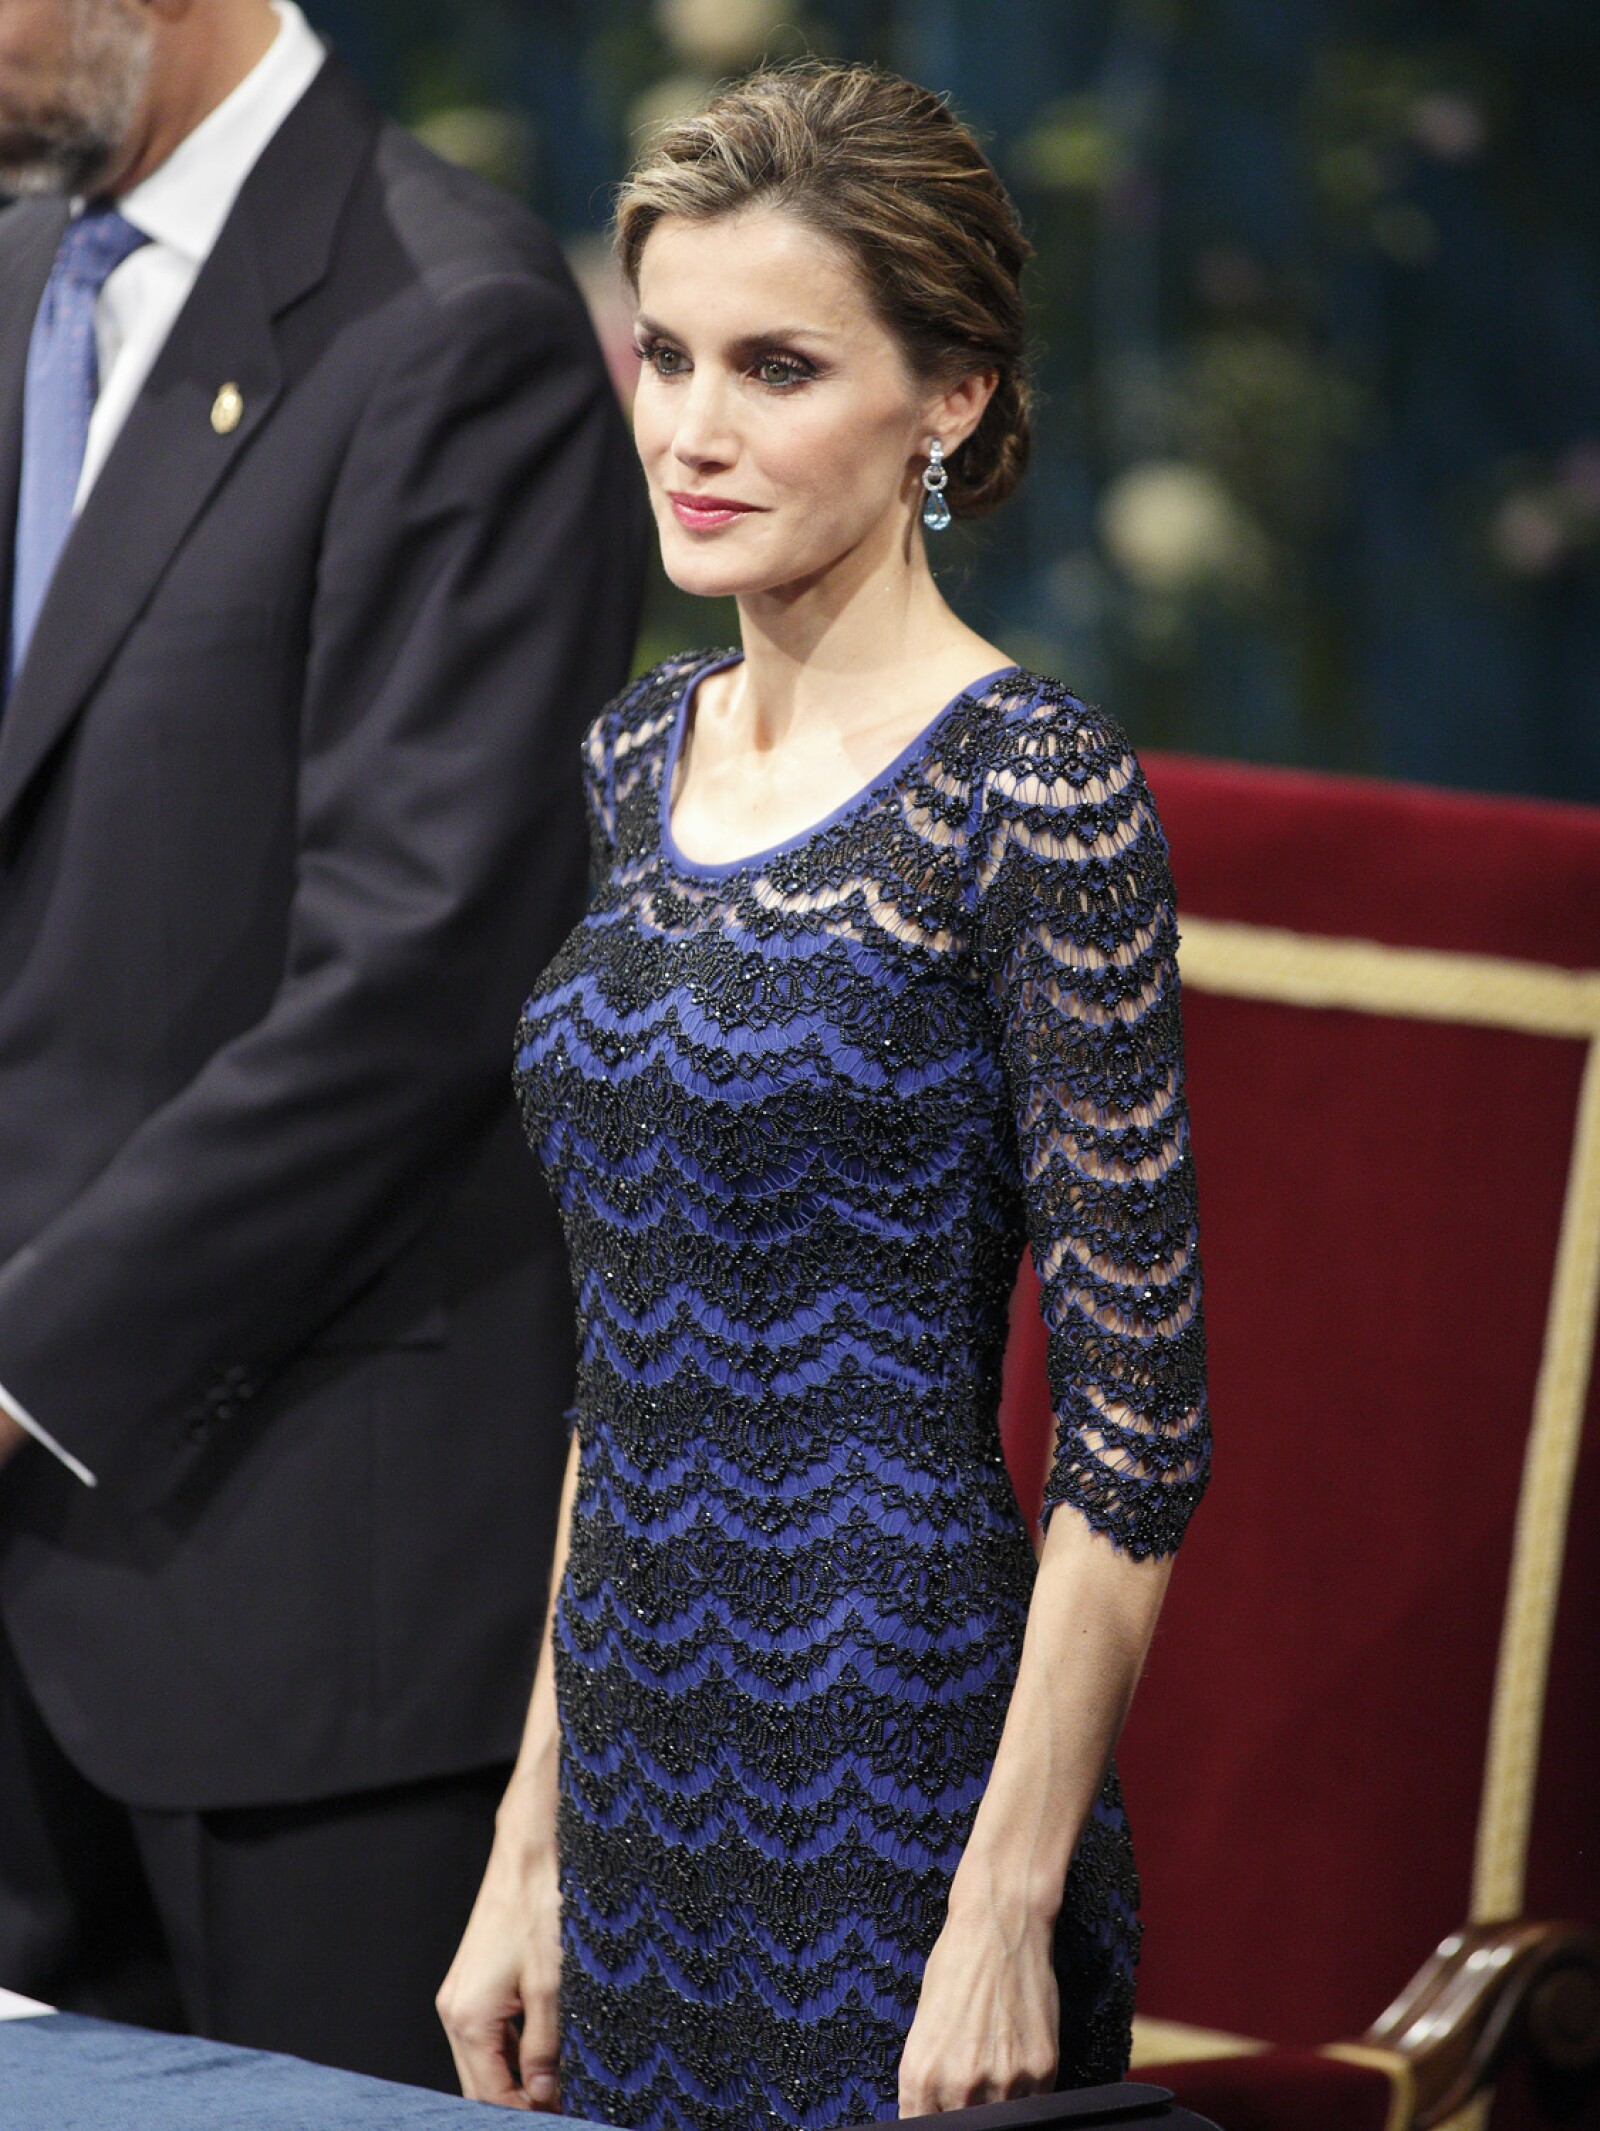 Prince of Asturias Awards 2014